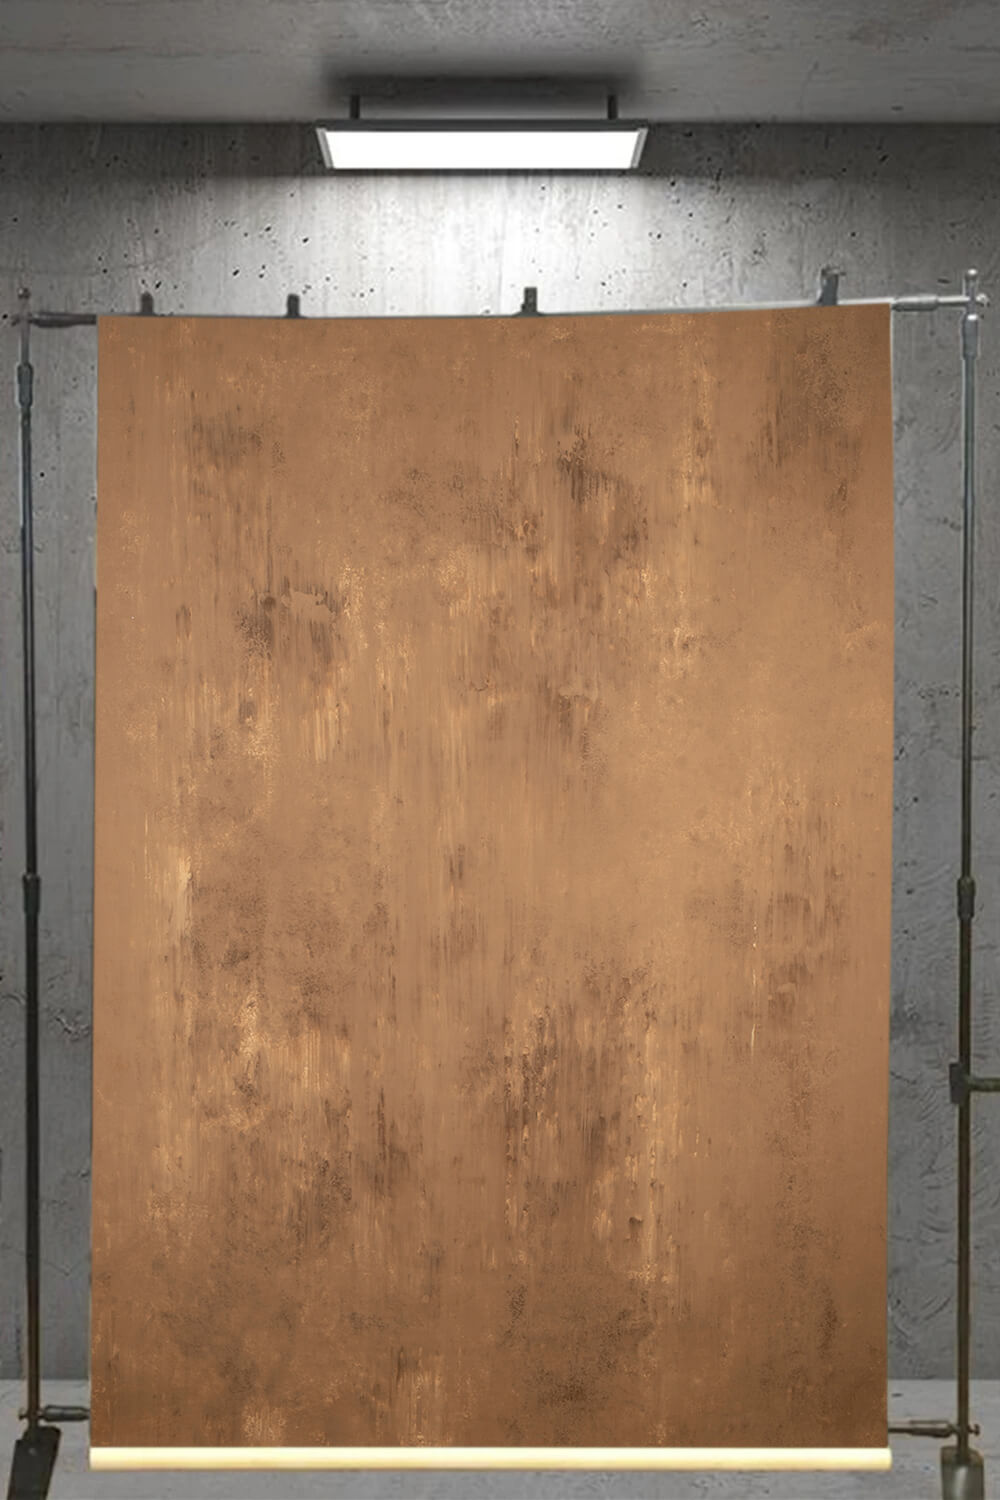 Clotstudio Abstract Red Ochre Textured Hand Painted Canvas Backdrop #clot 93